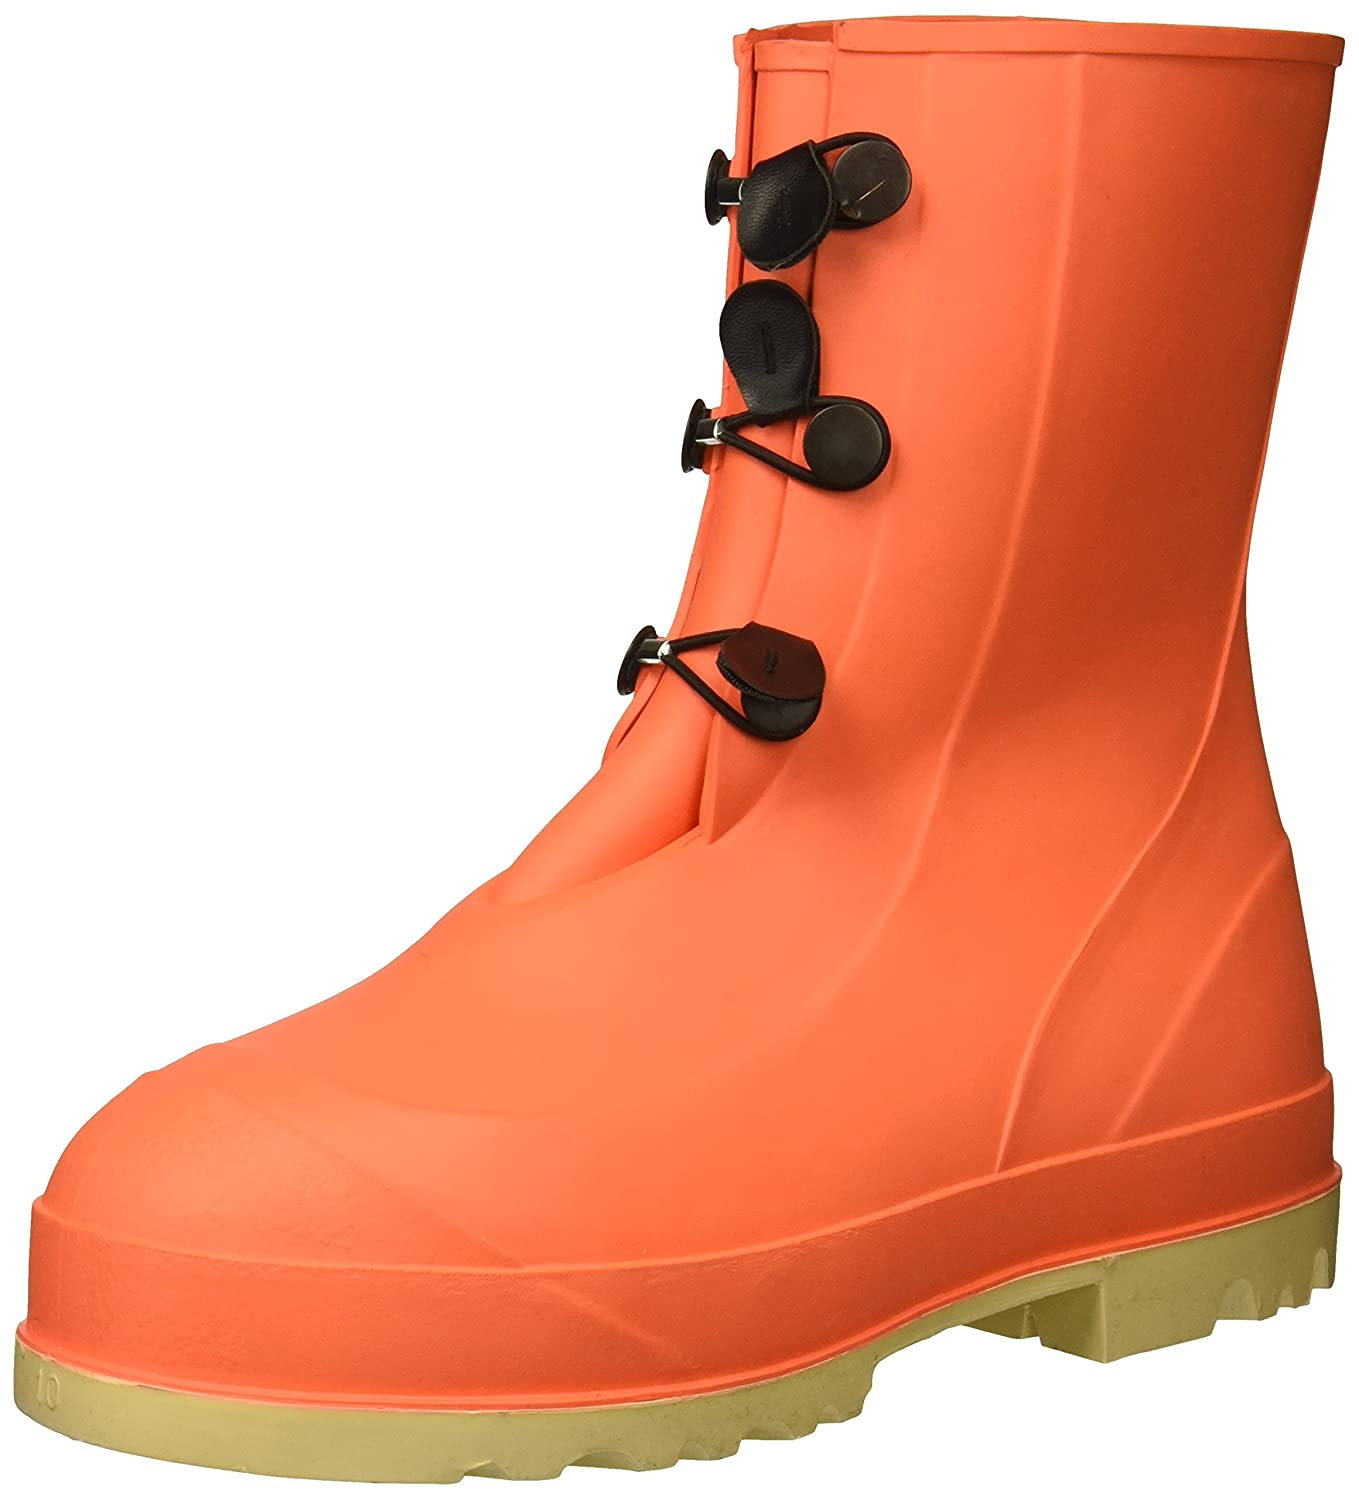 Amazon.com: hazproof Botas 82330 – 10: Home Improvement